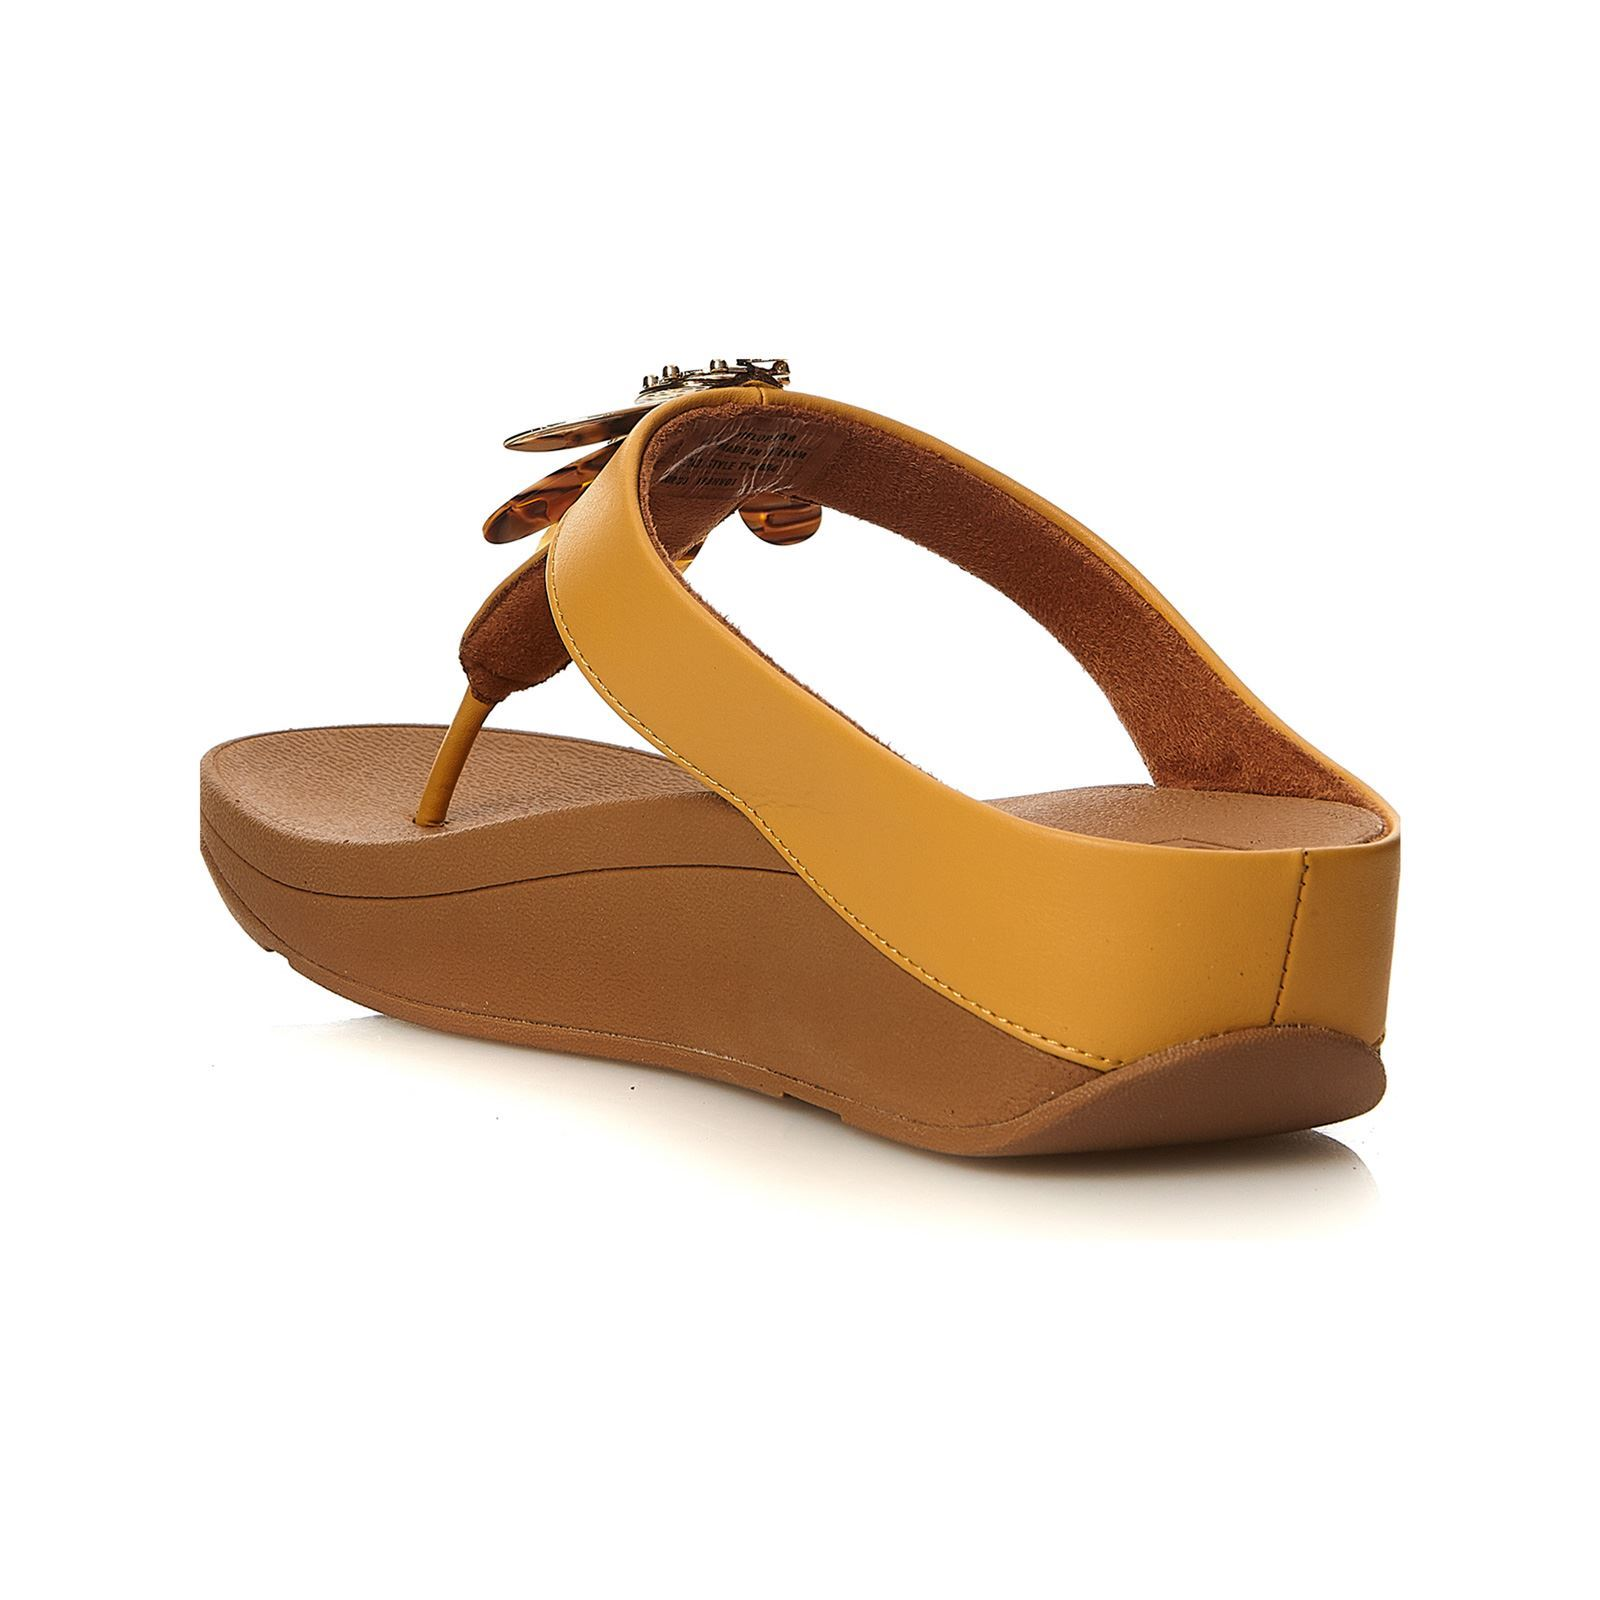 Fitflop DragonflyZehentrenner Gelb Conga Plateauhöhe2 Cm CodxBer